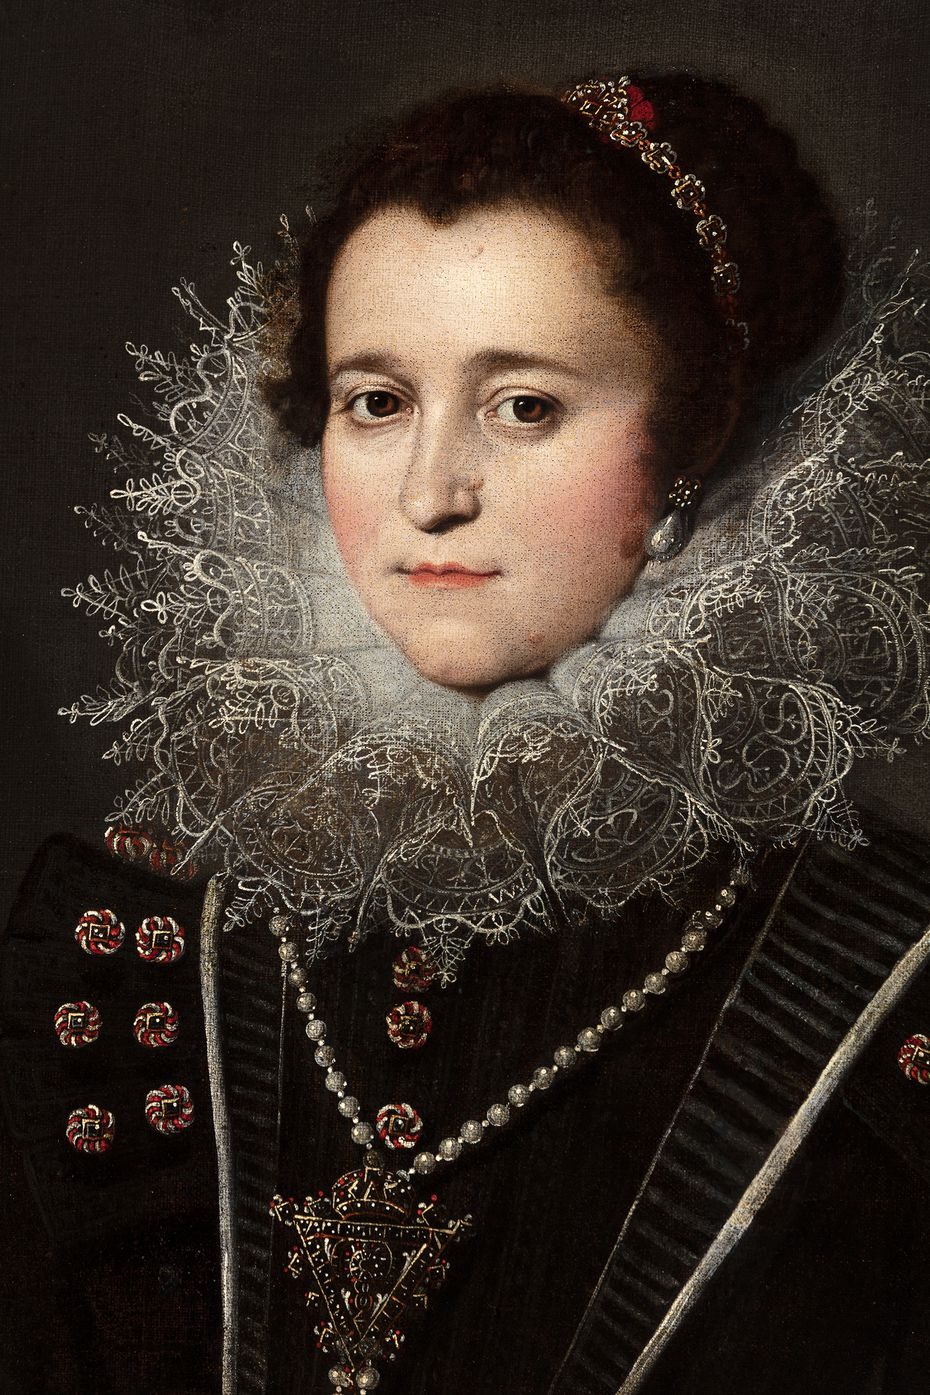 """Earlier this year, the Meadows acquired 1621 from Bartolomé González y Serrano """"Portrait of a lady"""" in honor of Roglán."""